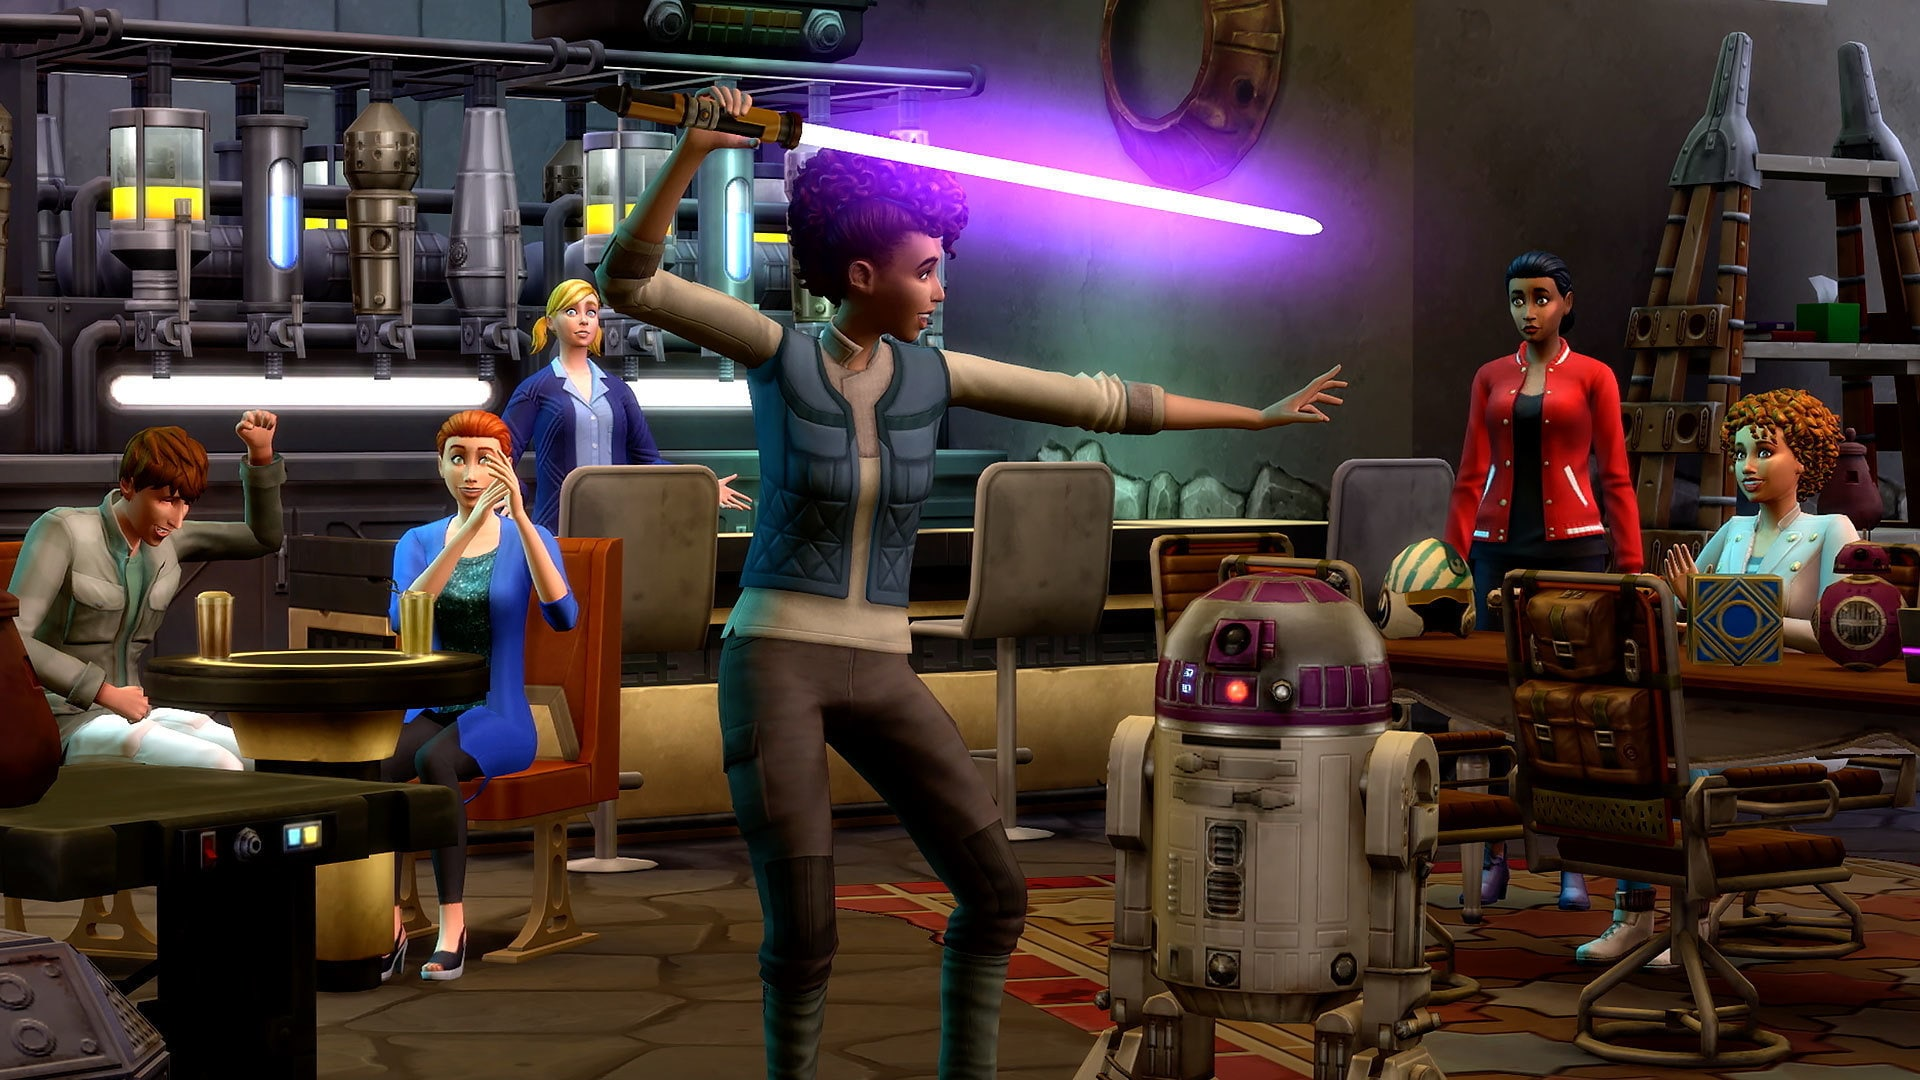 Official Trailer | The Sims 4 Star Wars: Journey to Batuu